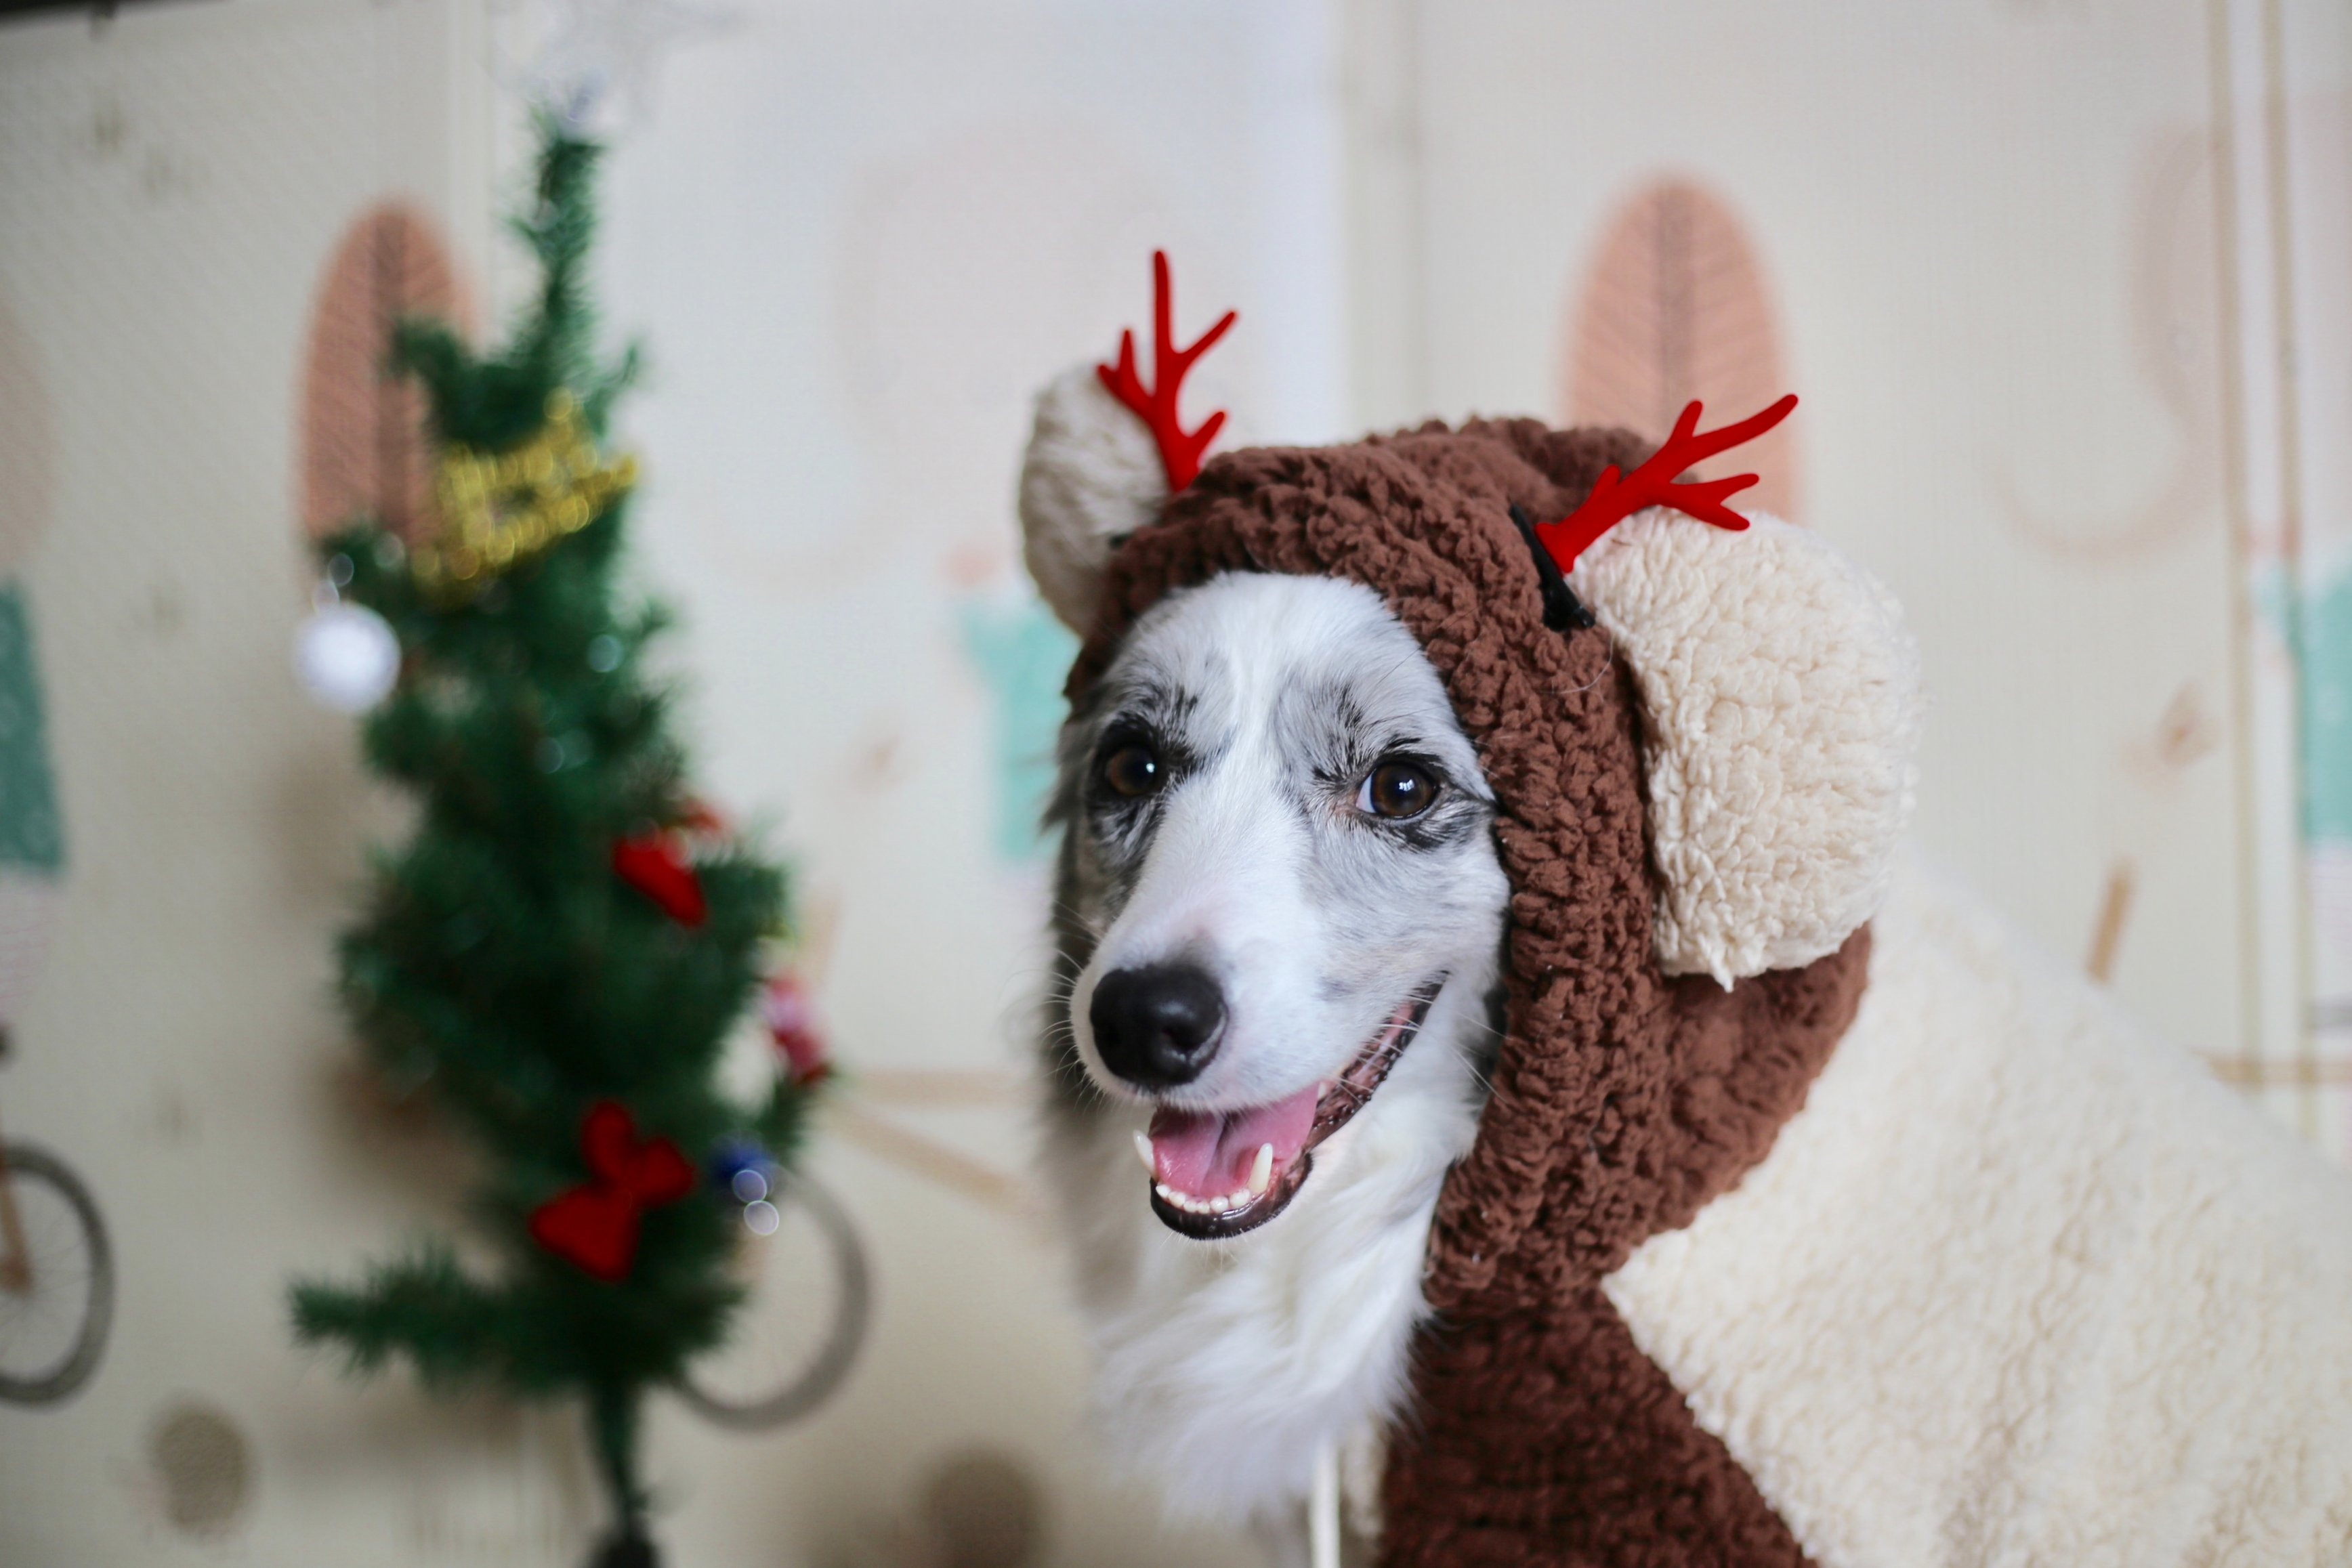 Best Christmas costumes for your dog